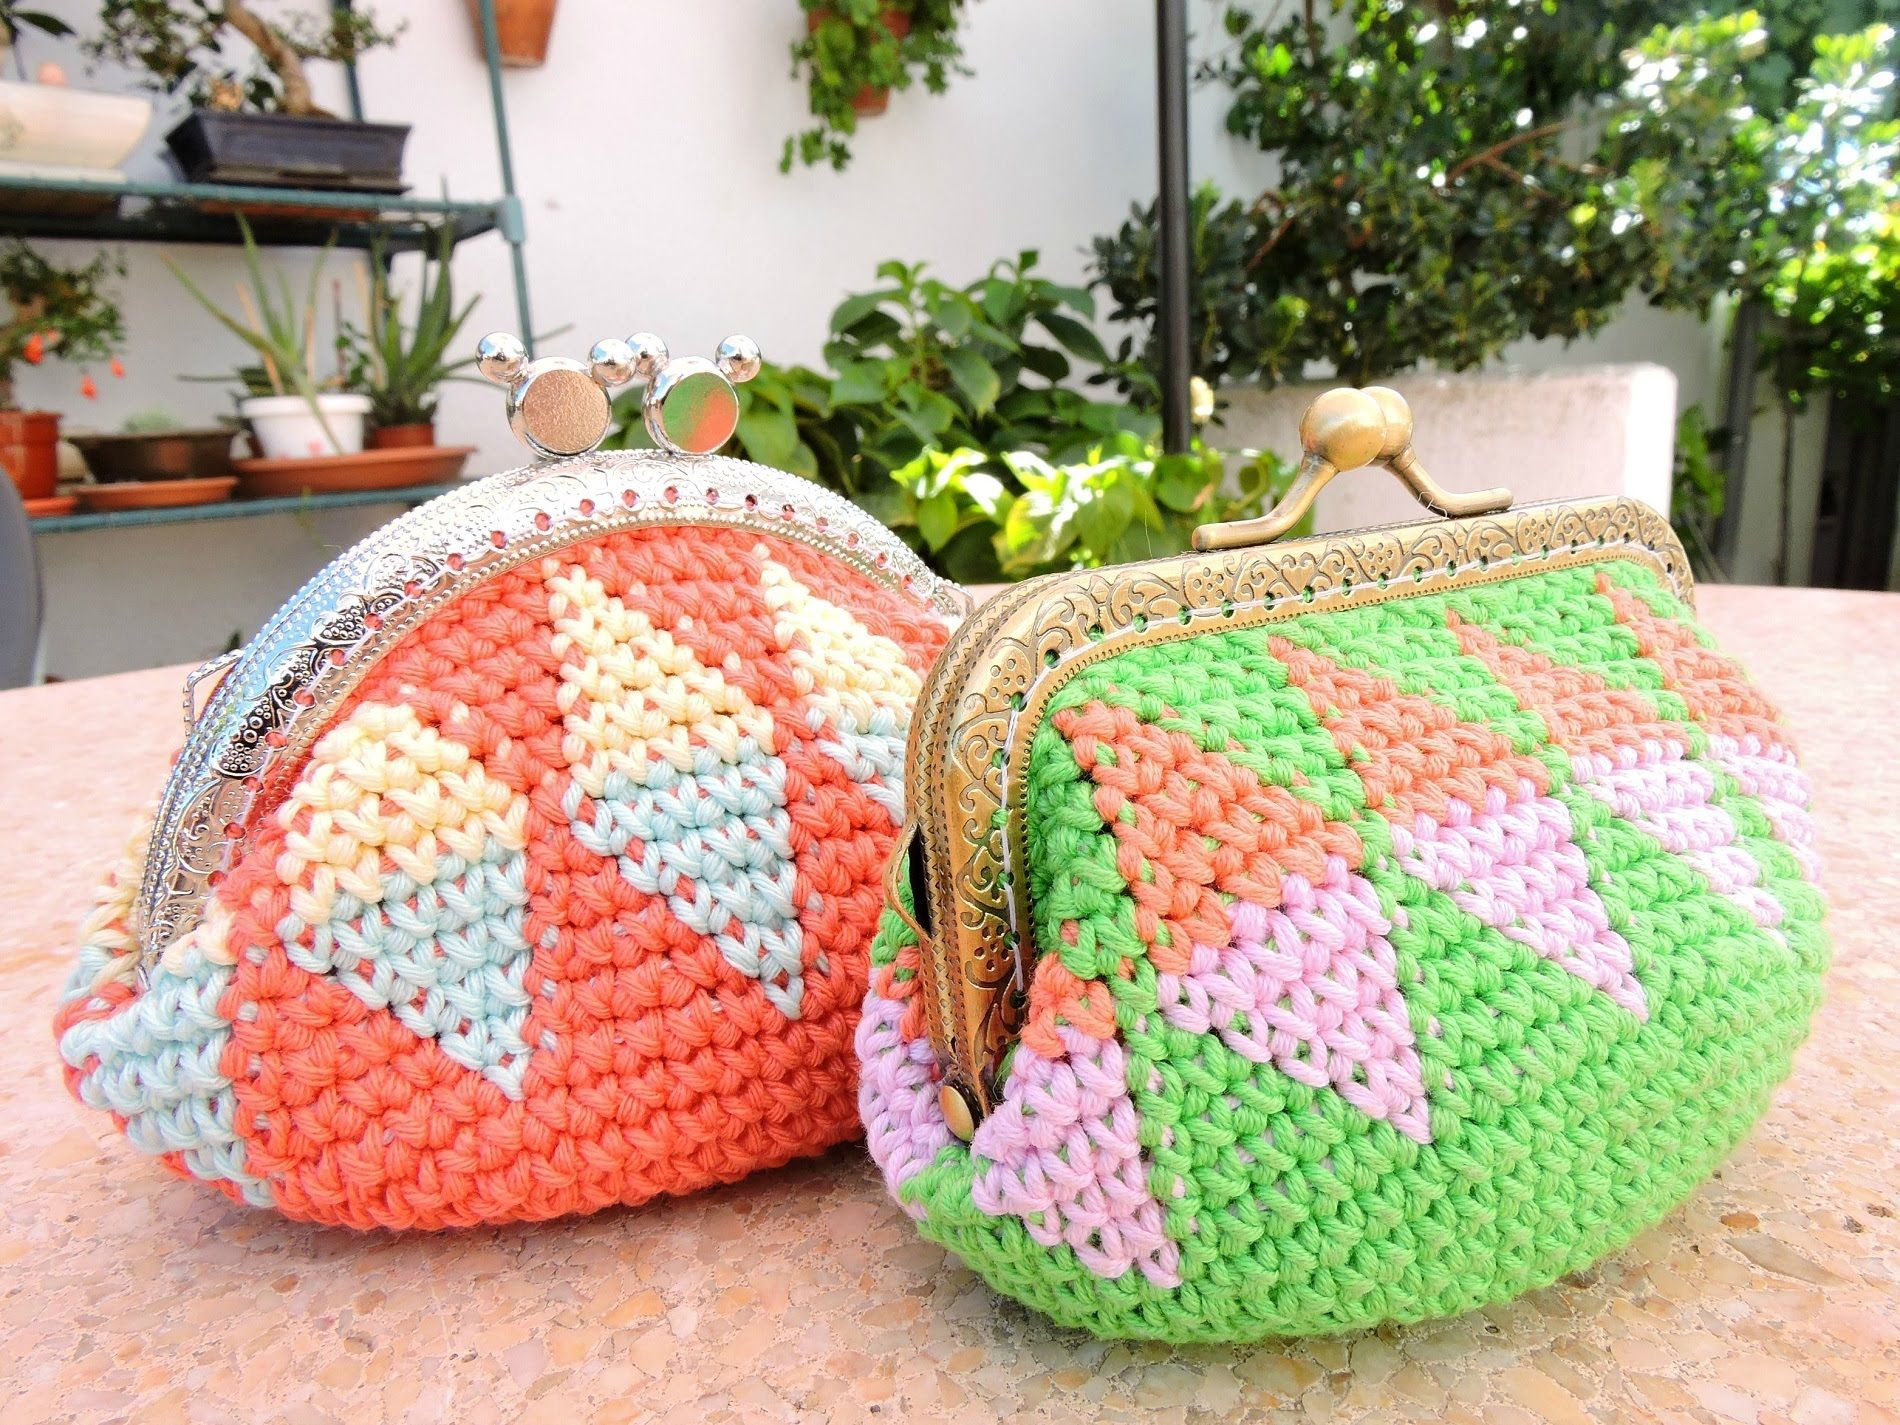 Monedero tapestry crochet free pattern | Monederos a crochet ...